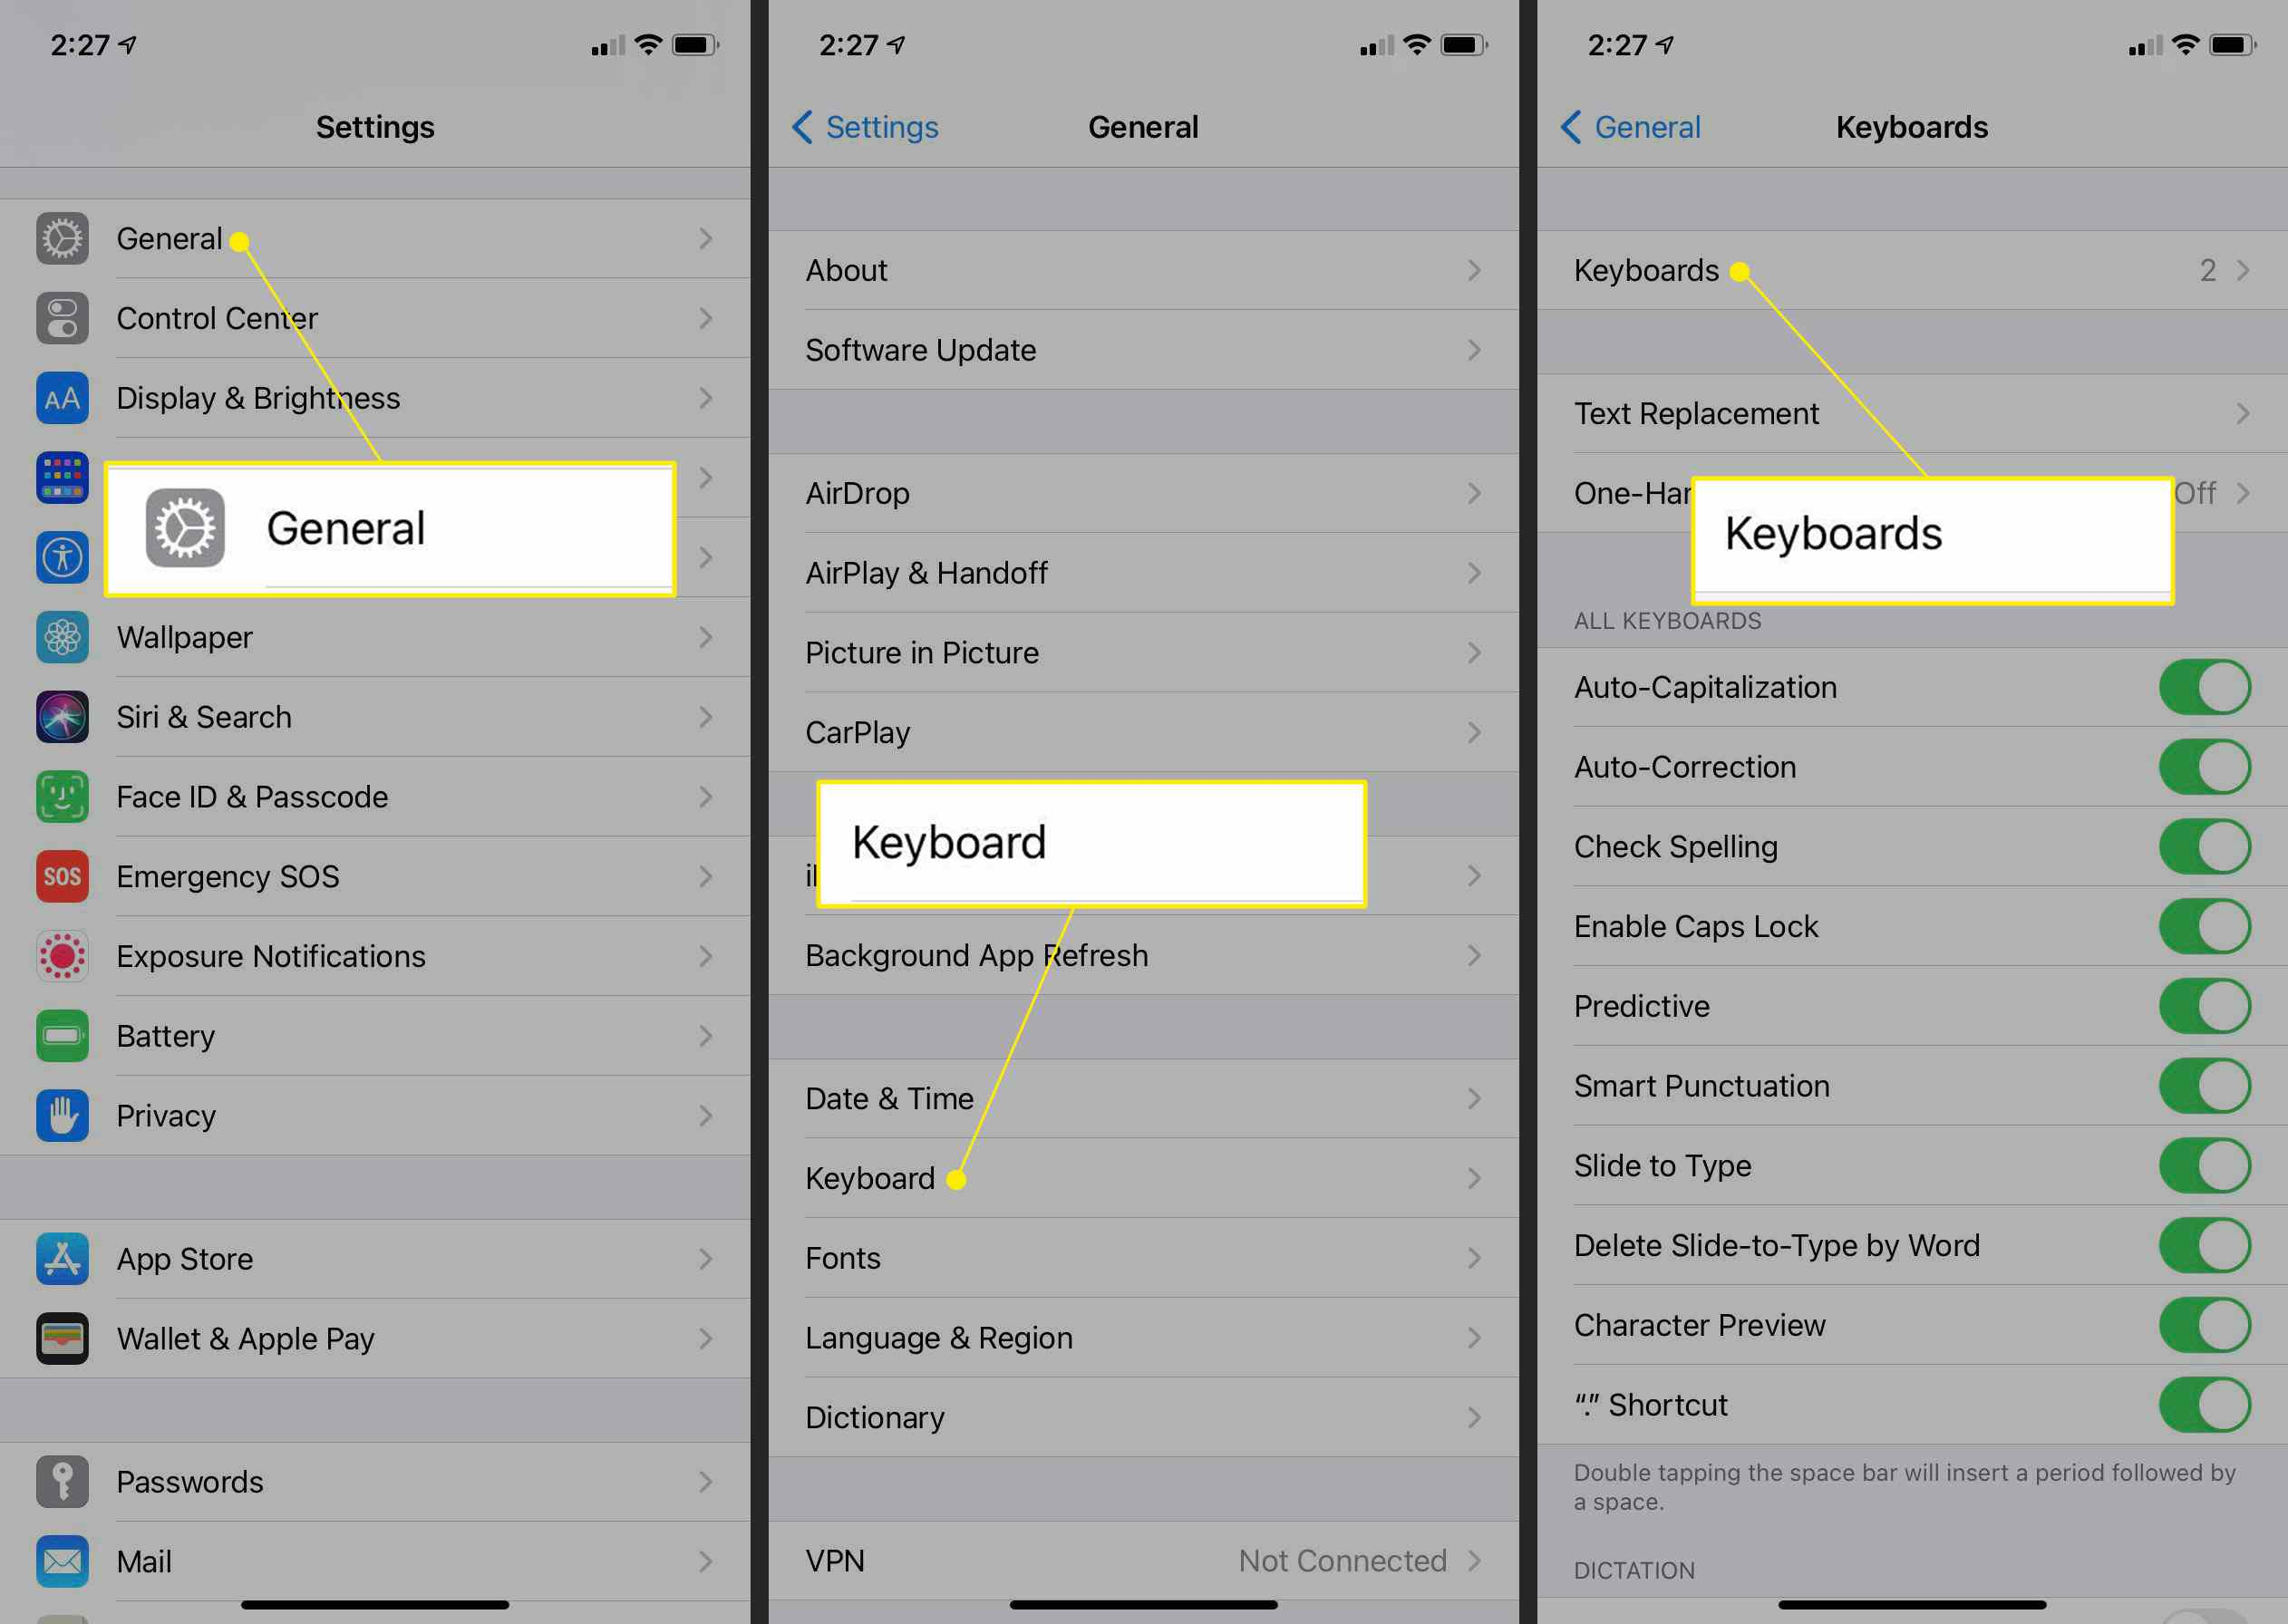 iOS Settings with General, Keyboard, and Keyboards highlighted